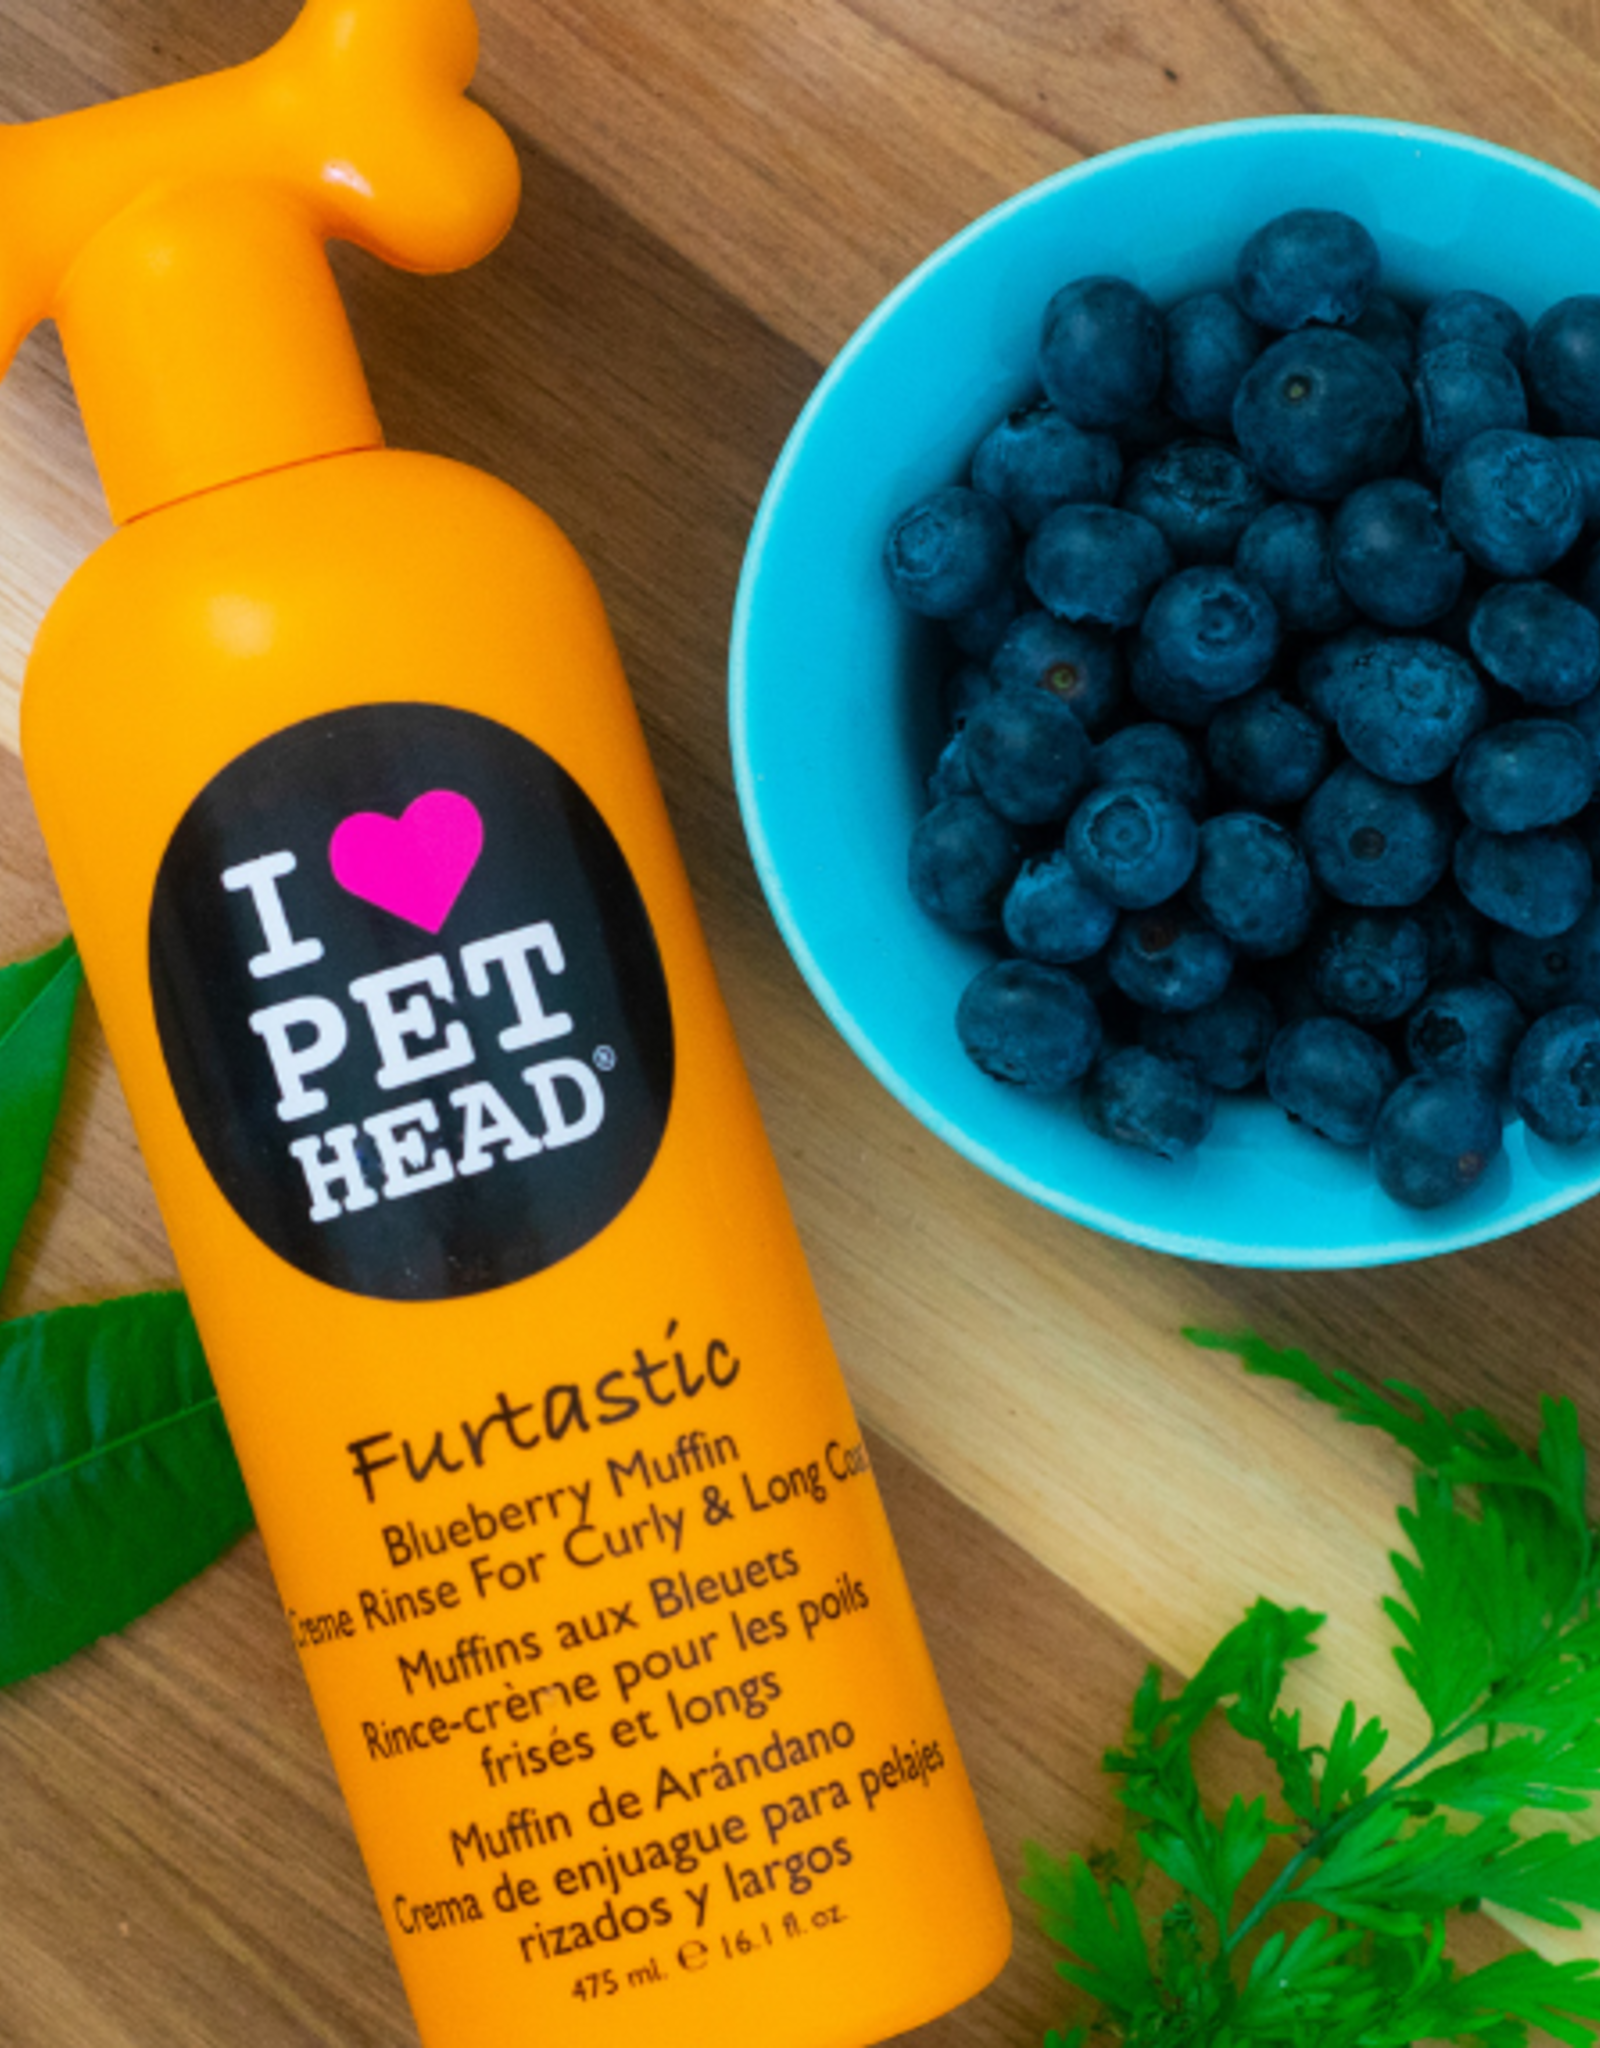 Company of Animals Pet Head Furtastic Blueberry Muffin Conditioner Rinse for Dogs, 475ml